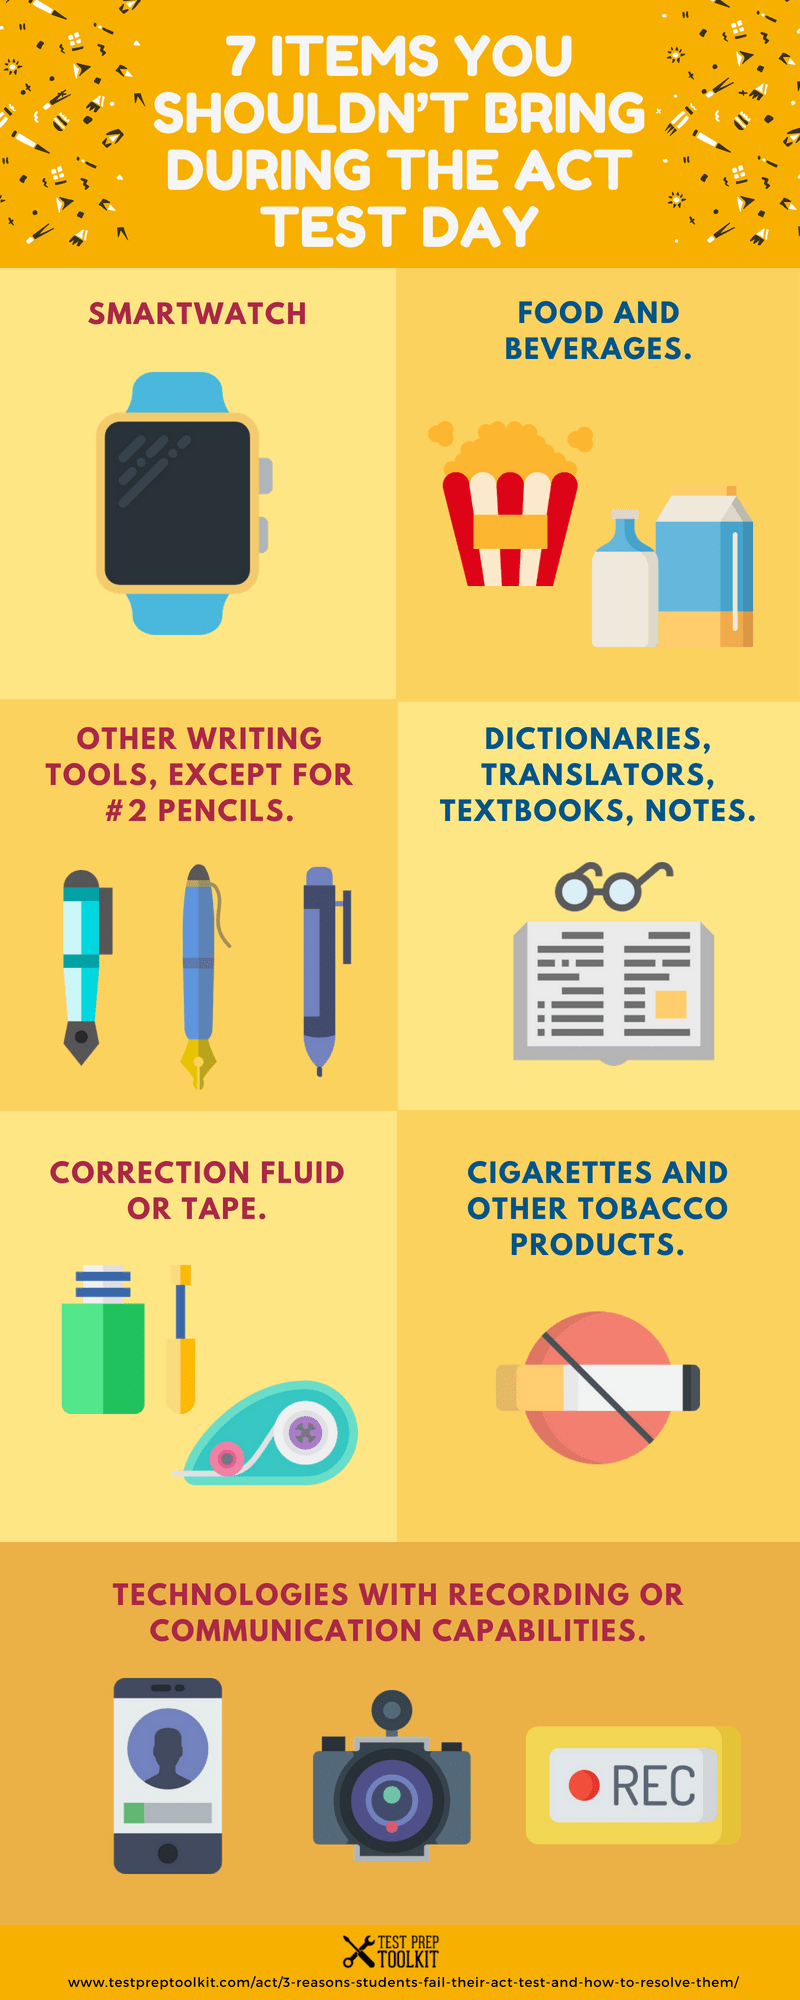 7 Items You Shouldn't Bring During the ACT Test Day - ACT Guide